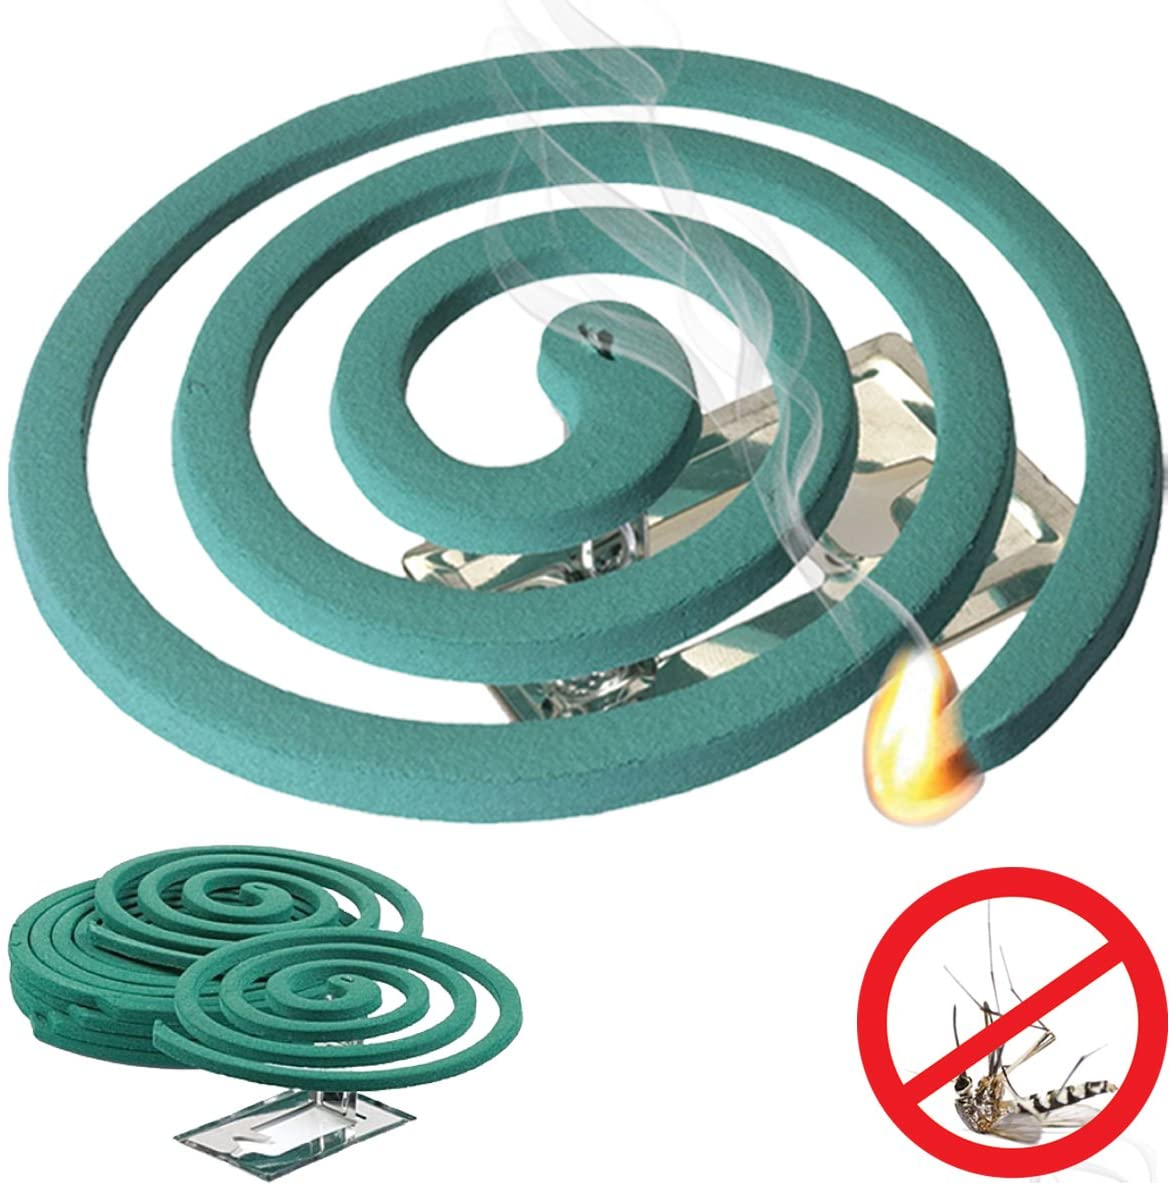 Choosing Insect Repellent Coils Image